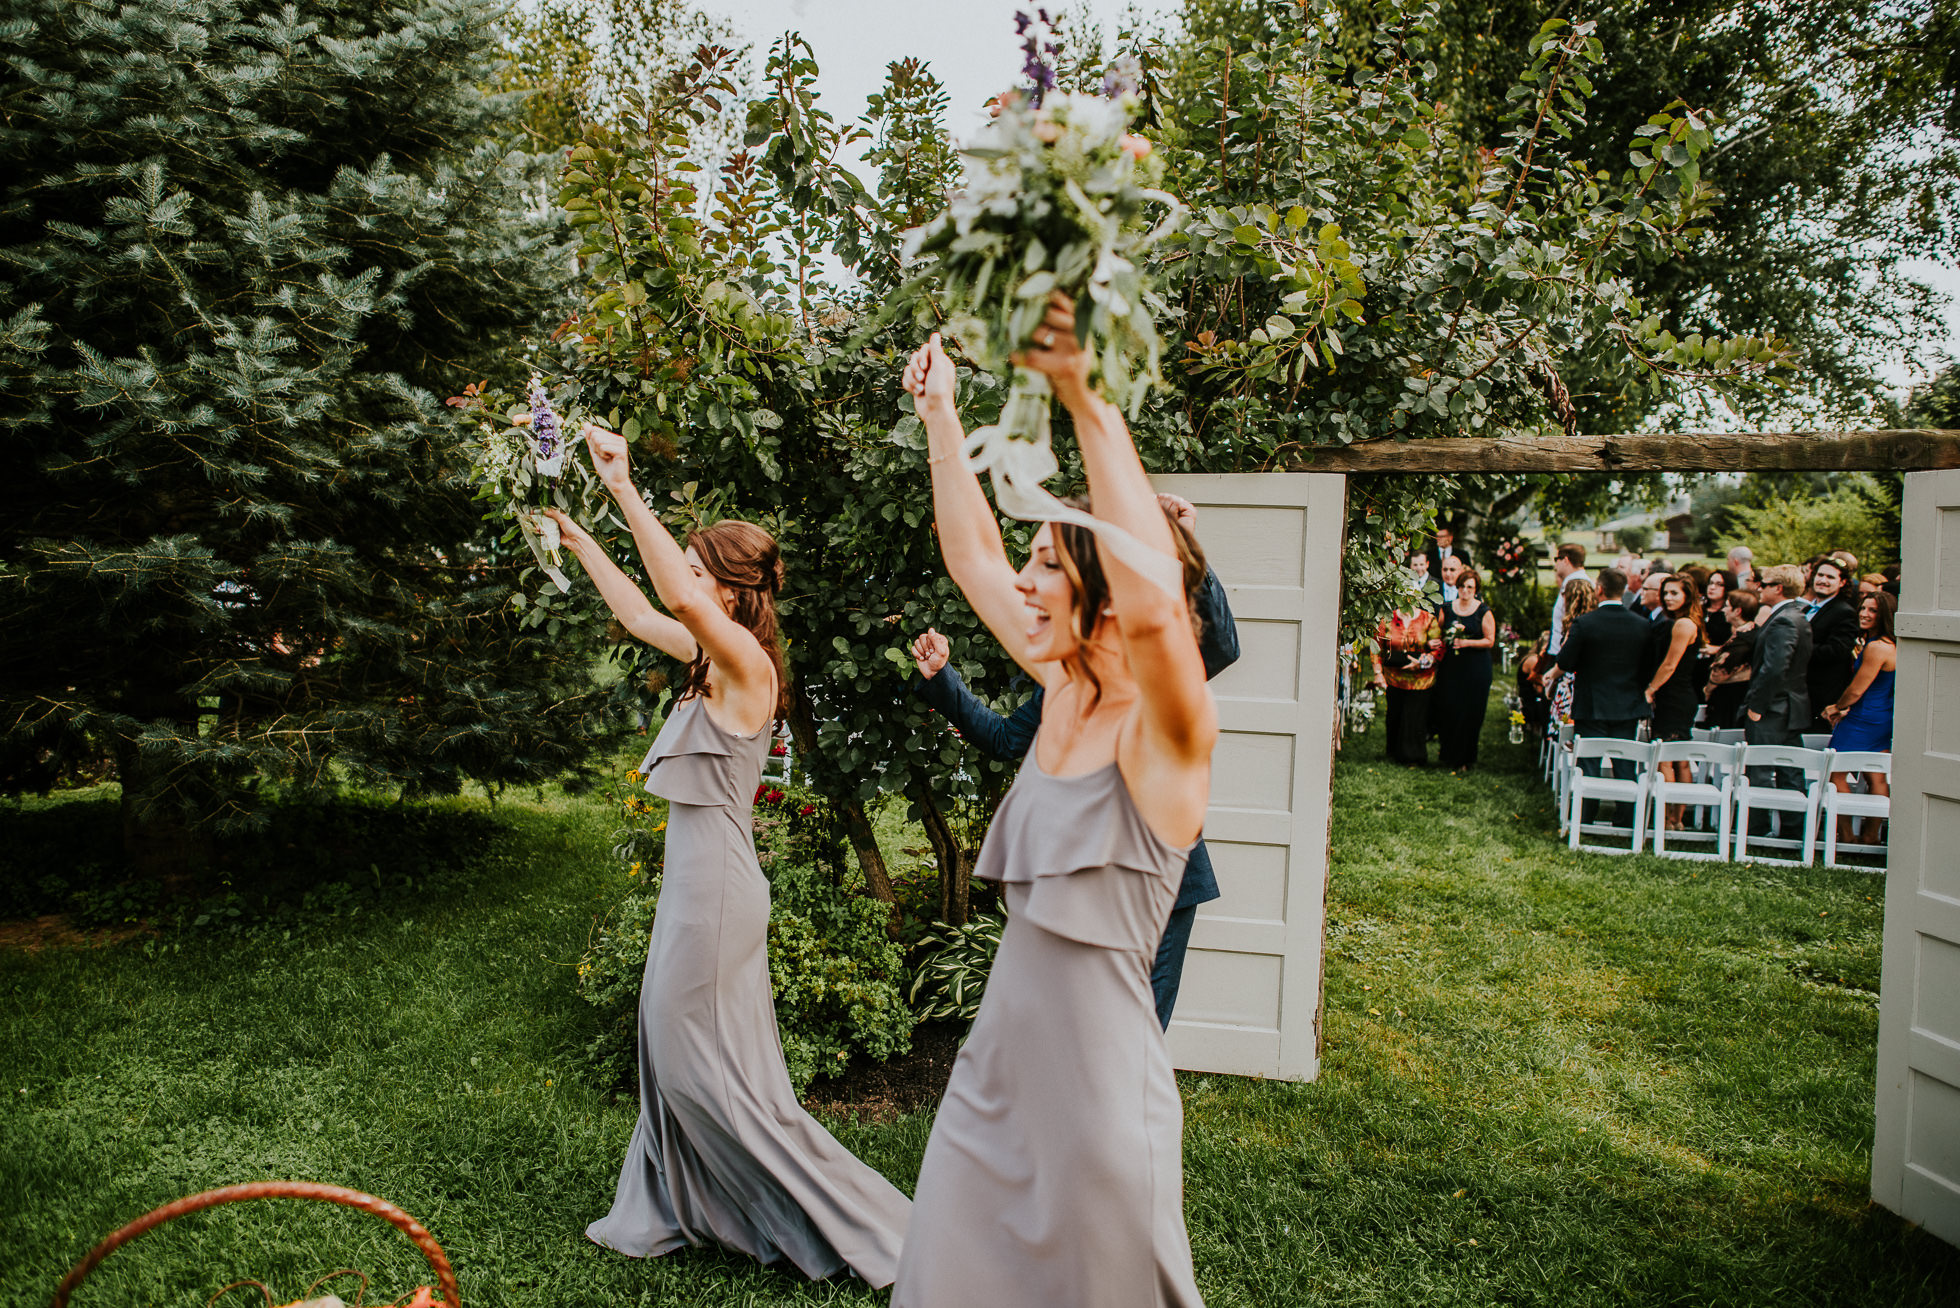 bridesmaids celebrate at rustic outdoor ceremony at olde tater barn wedding in central bridge, ny photographed by traverse the tides